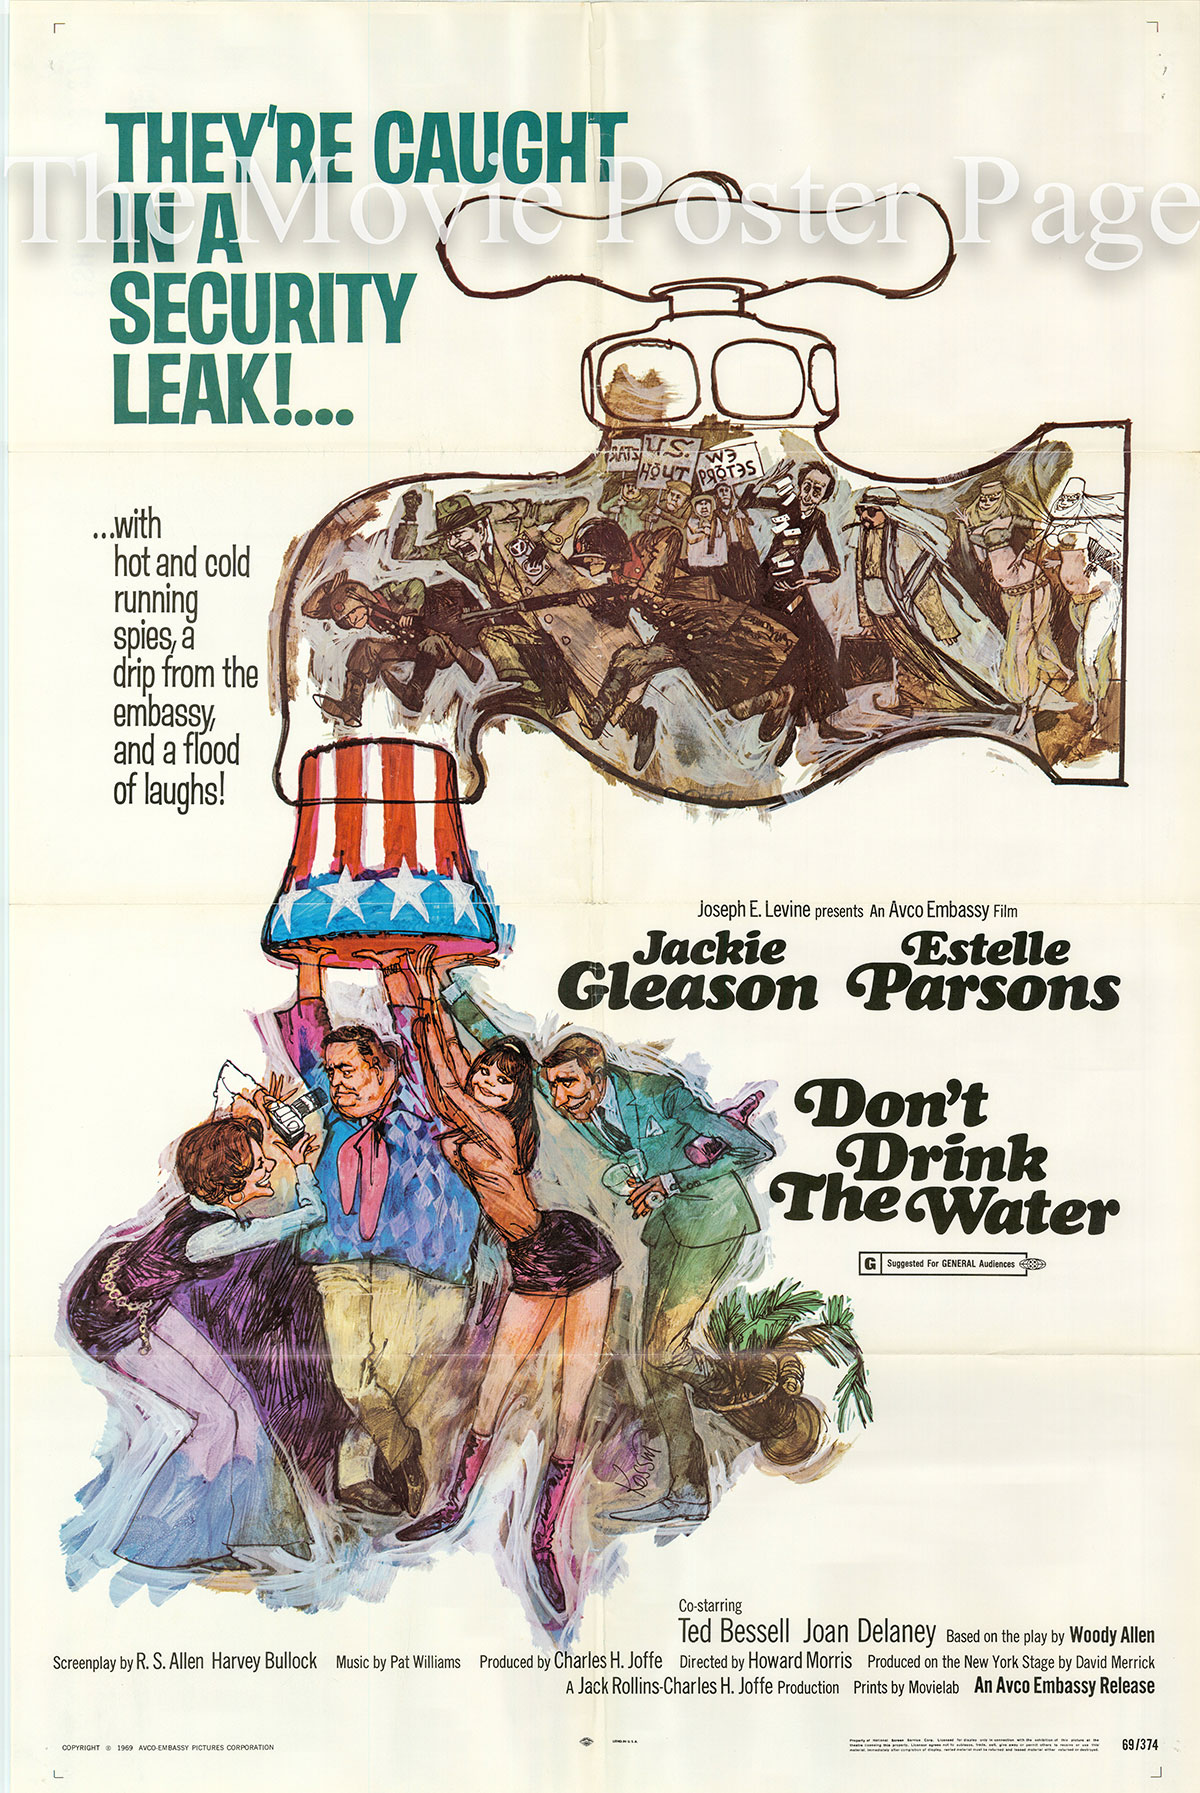 Pictured is a US promotional poster for the 1969 Howard Morris film Don't Drink the Water starring Jackie Gleason based on a play by Woody Allen.